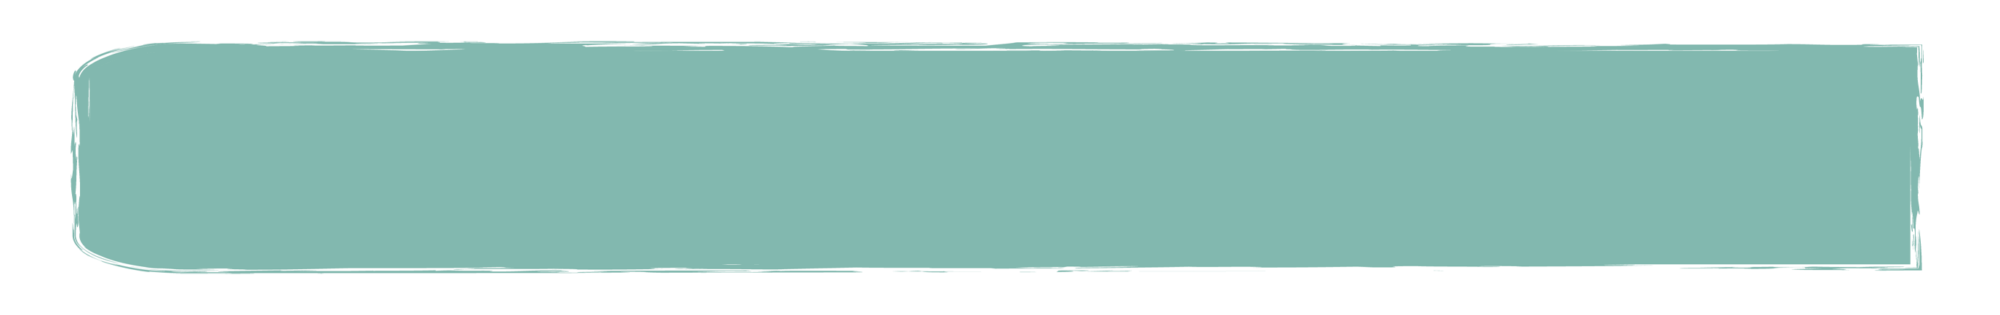 Slider Paint - 1 Line (Green)